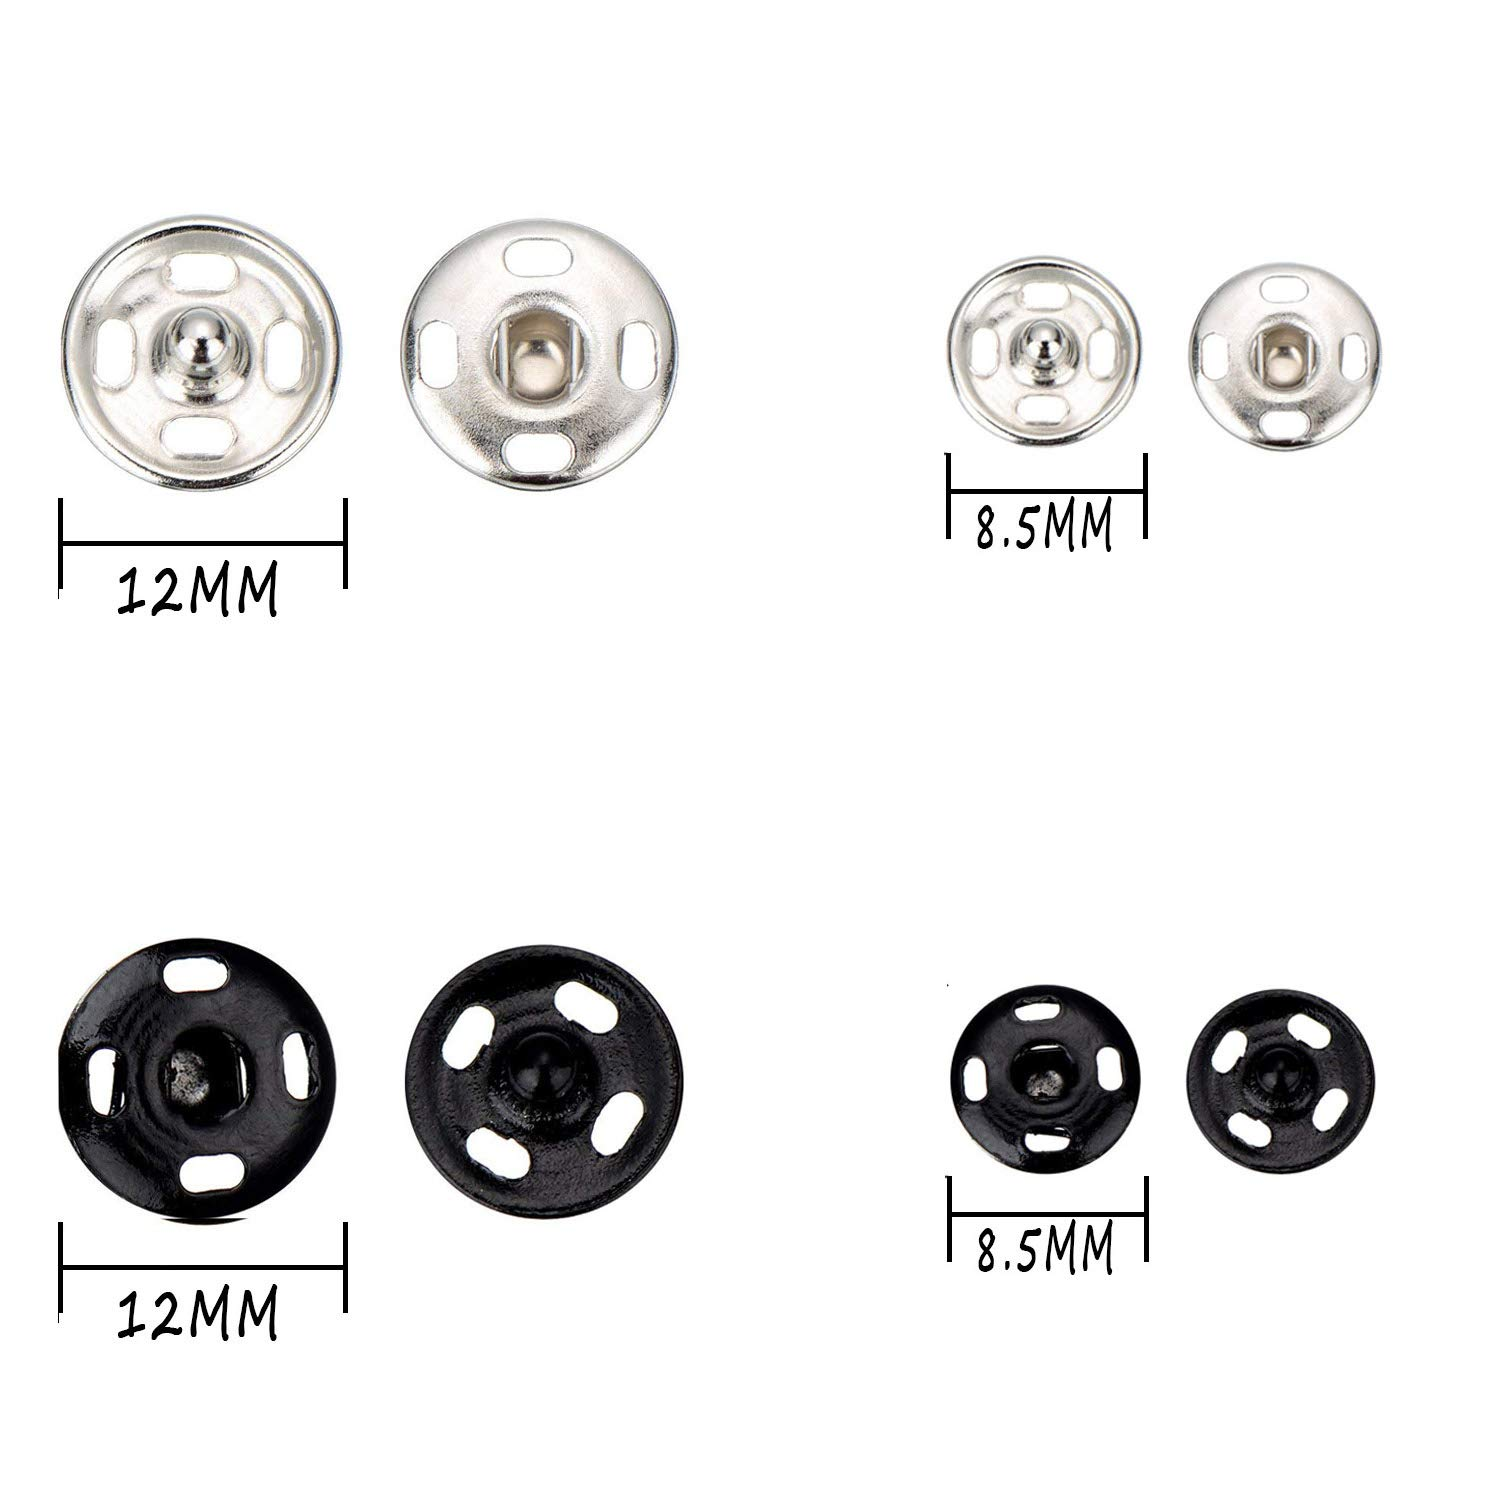 TommoT 100 Sets Sew-on Snap Buttons Metal Snaps Fasteners Press Studs Buttons for Sewing 12 mm and 8.5 mm,Black and Silver-25 Set for Each Color Each Size